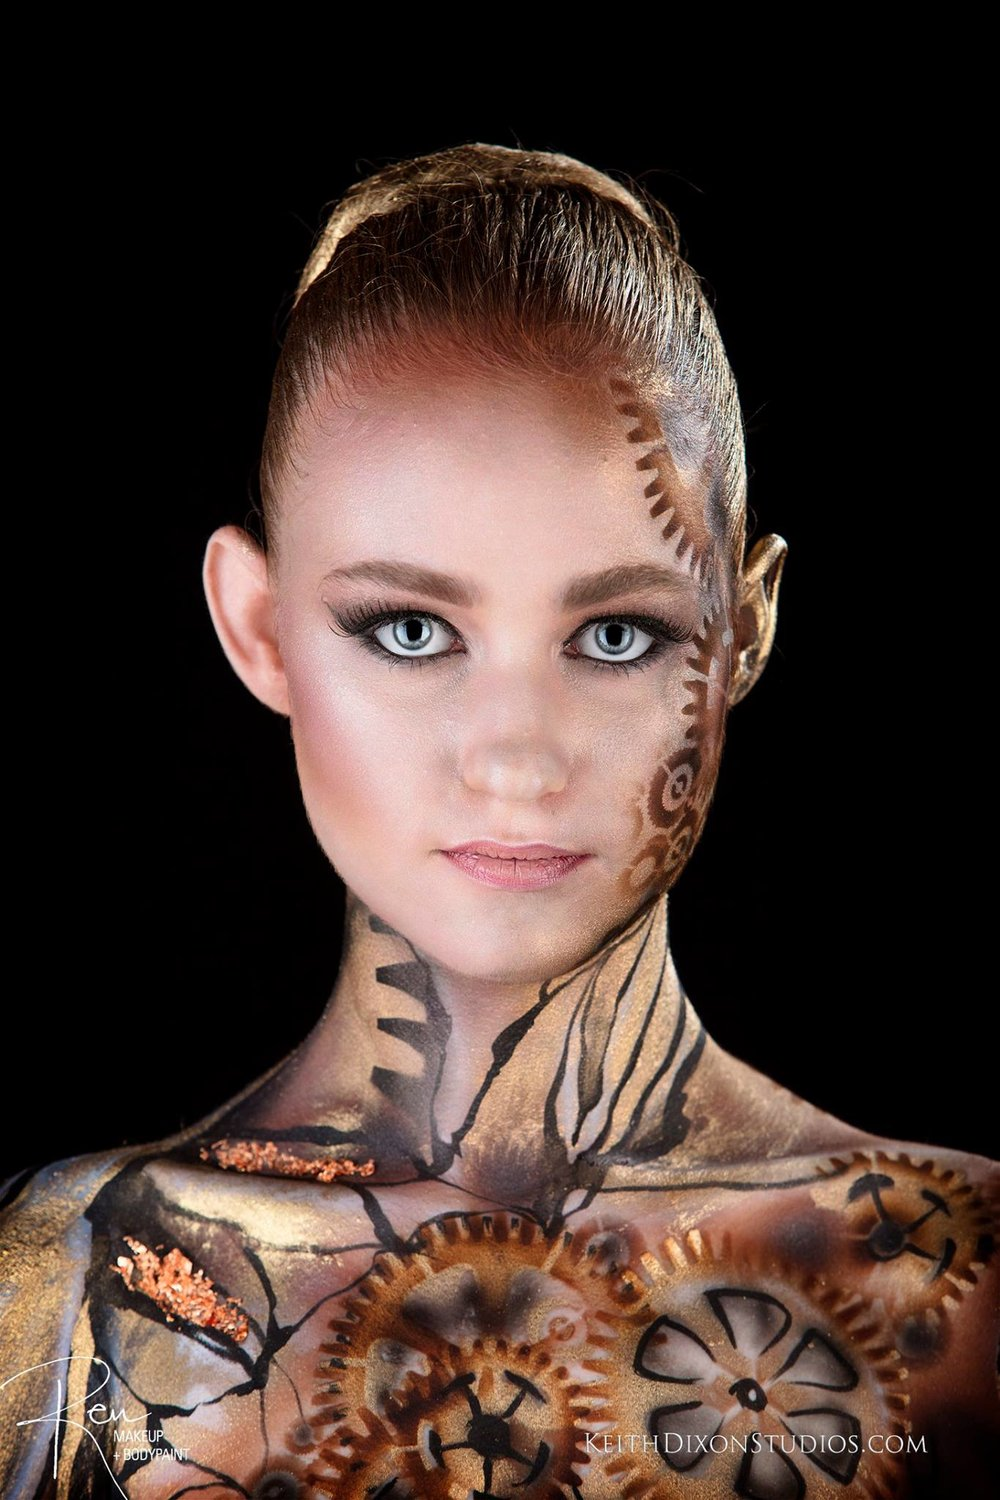 teagan face bodypaint.jpg